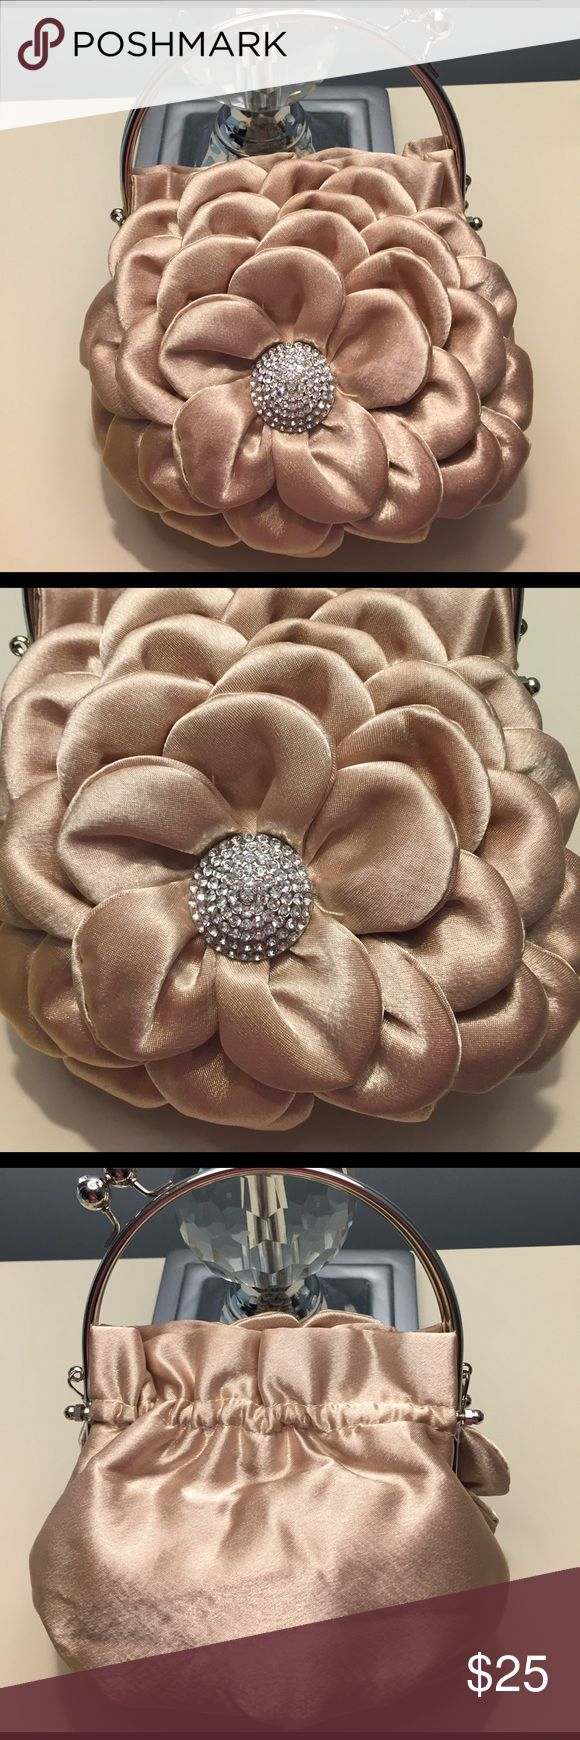 Gold, Flower, Crystal Embellished Clutch. Worn 1X This is a gold evening clutch. It features a flower design with a crystal embellished center. It is pretty roomy for a  evening clutch. It also has a long strap so you can wear the bag on your shoulder. In excellent used condition. Worn one time for my rehearsal dinner. Offers welcome. Bags Clutches & Wristlets